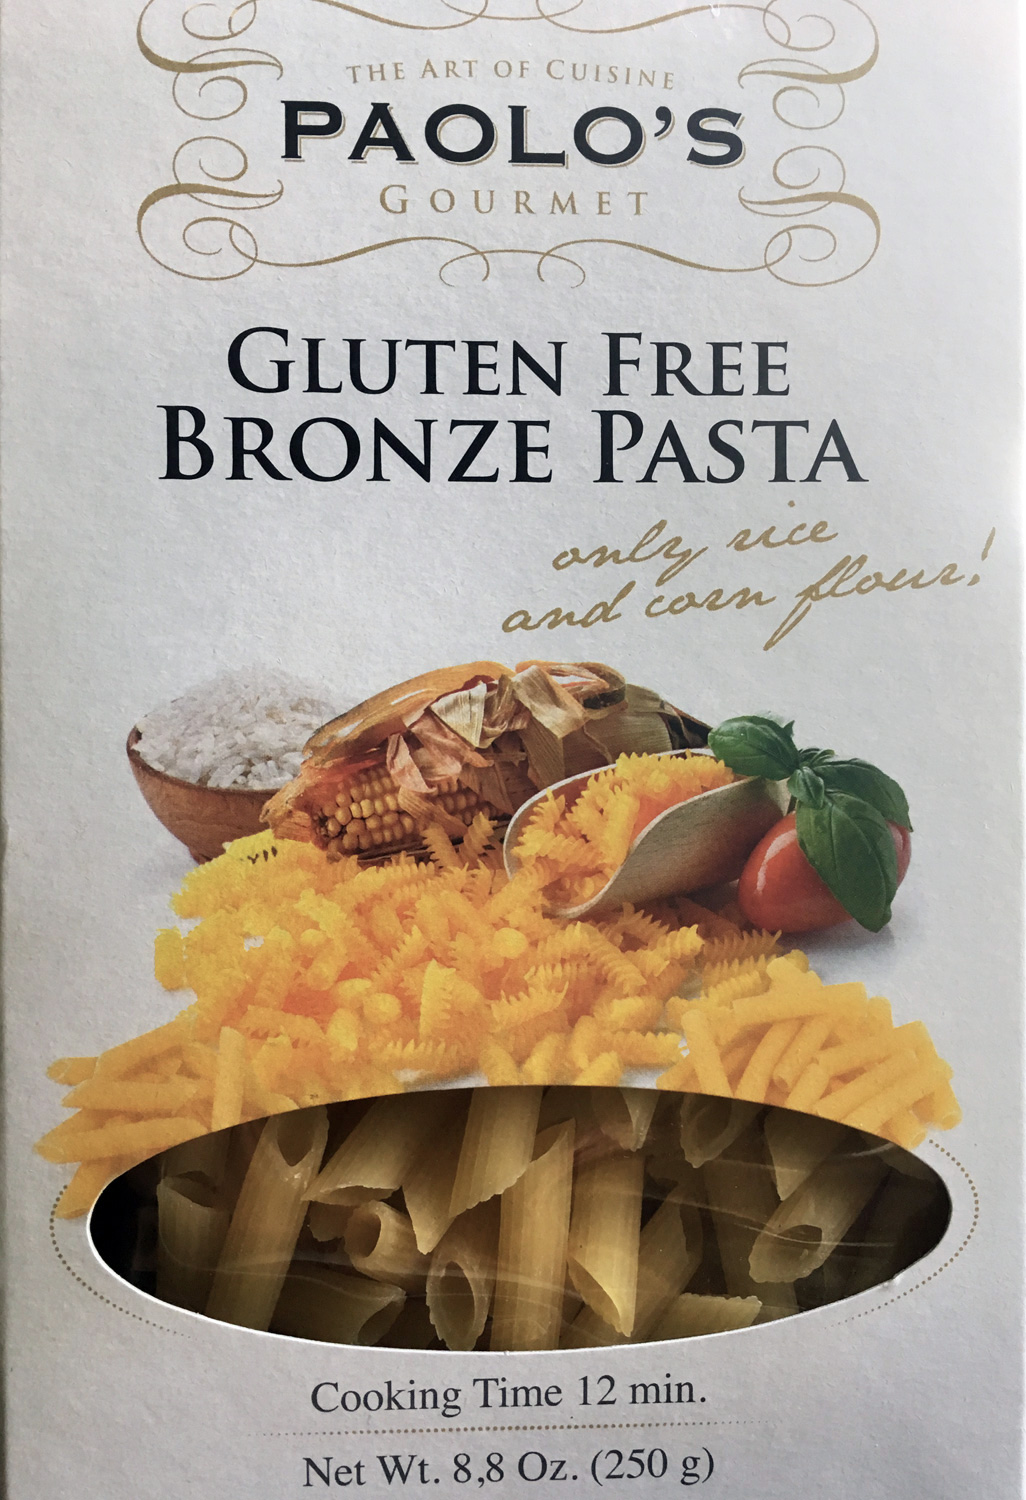 Really love this brand of gluten free pasta